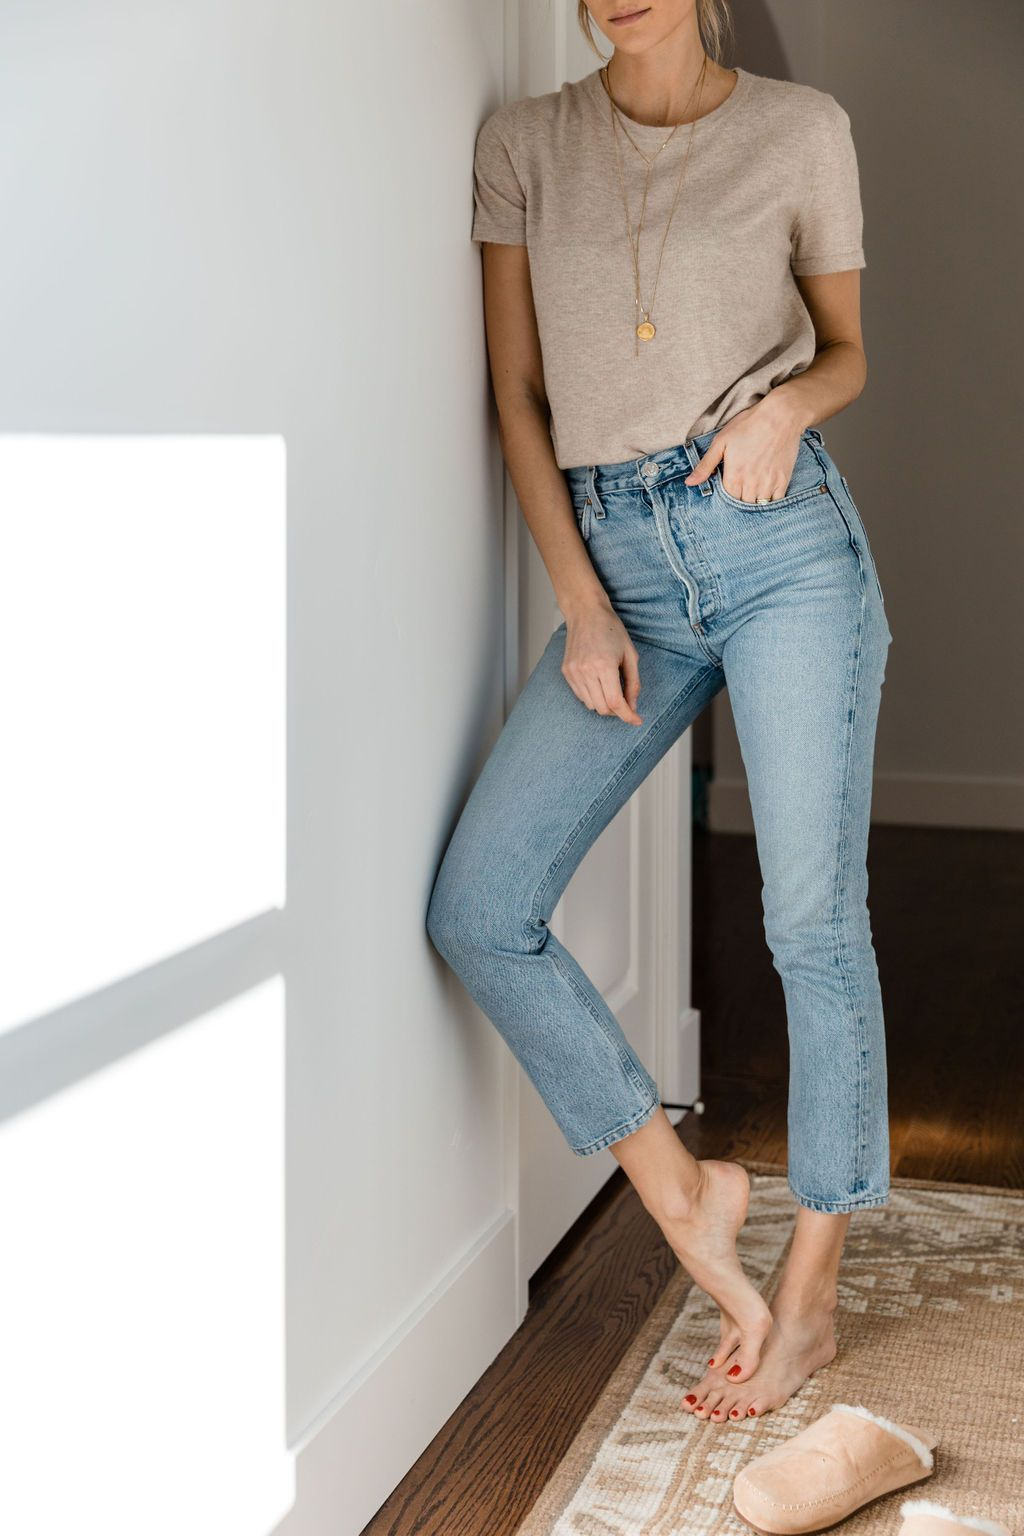 Weekend Sales — The Fox & She – Style Inspiration